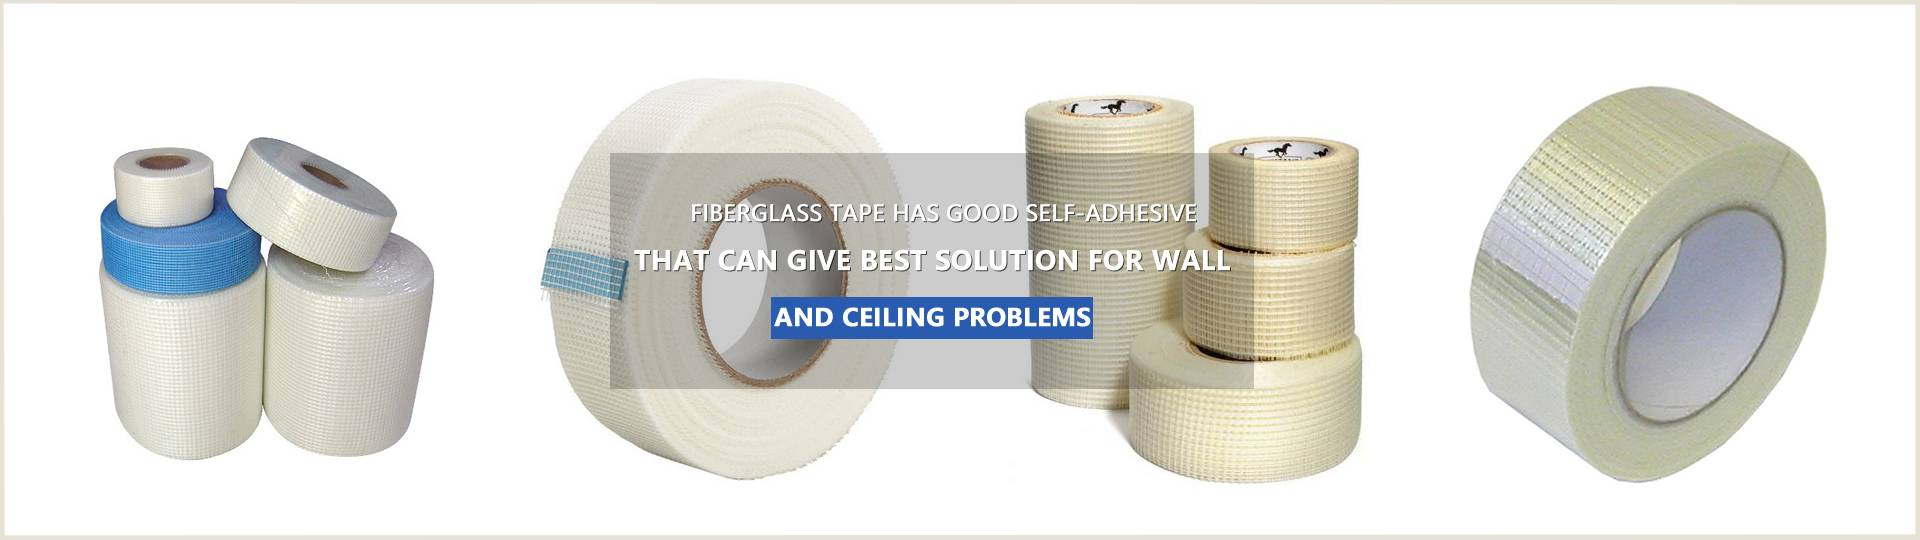 Several rolls of fiberglass tape with different sizes are on the white background.